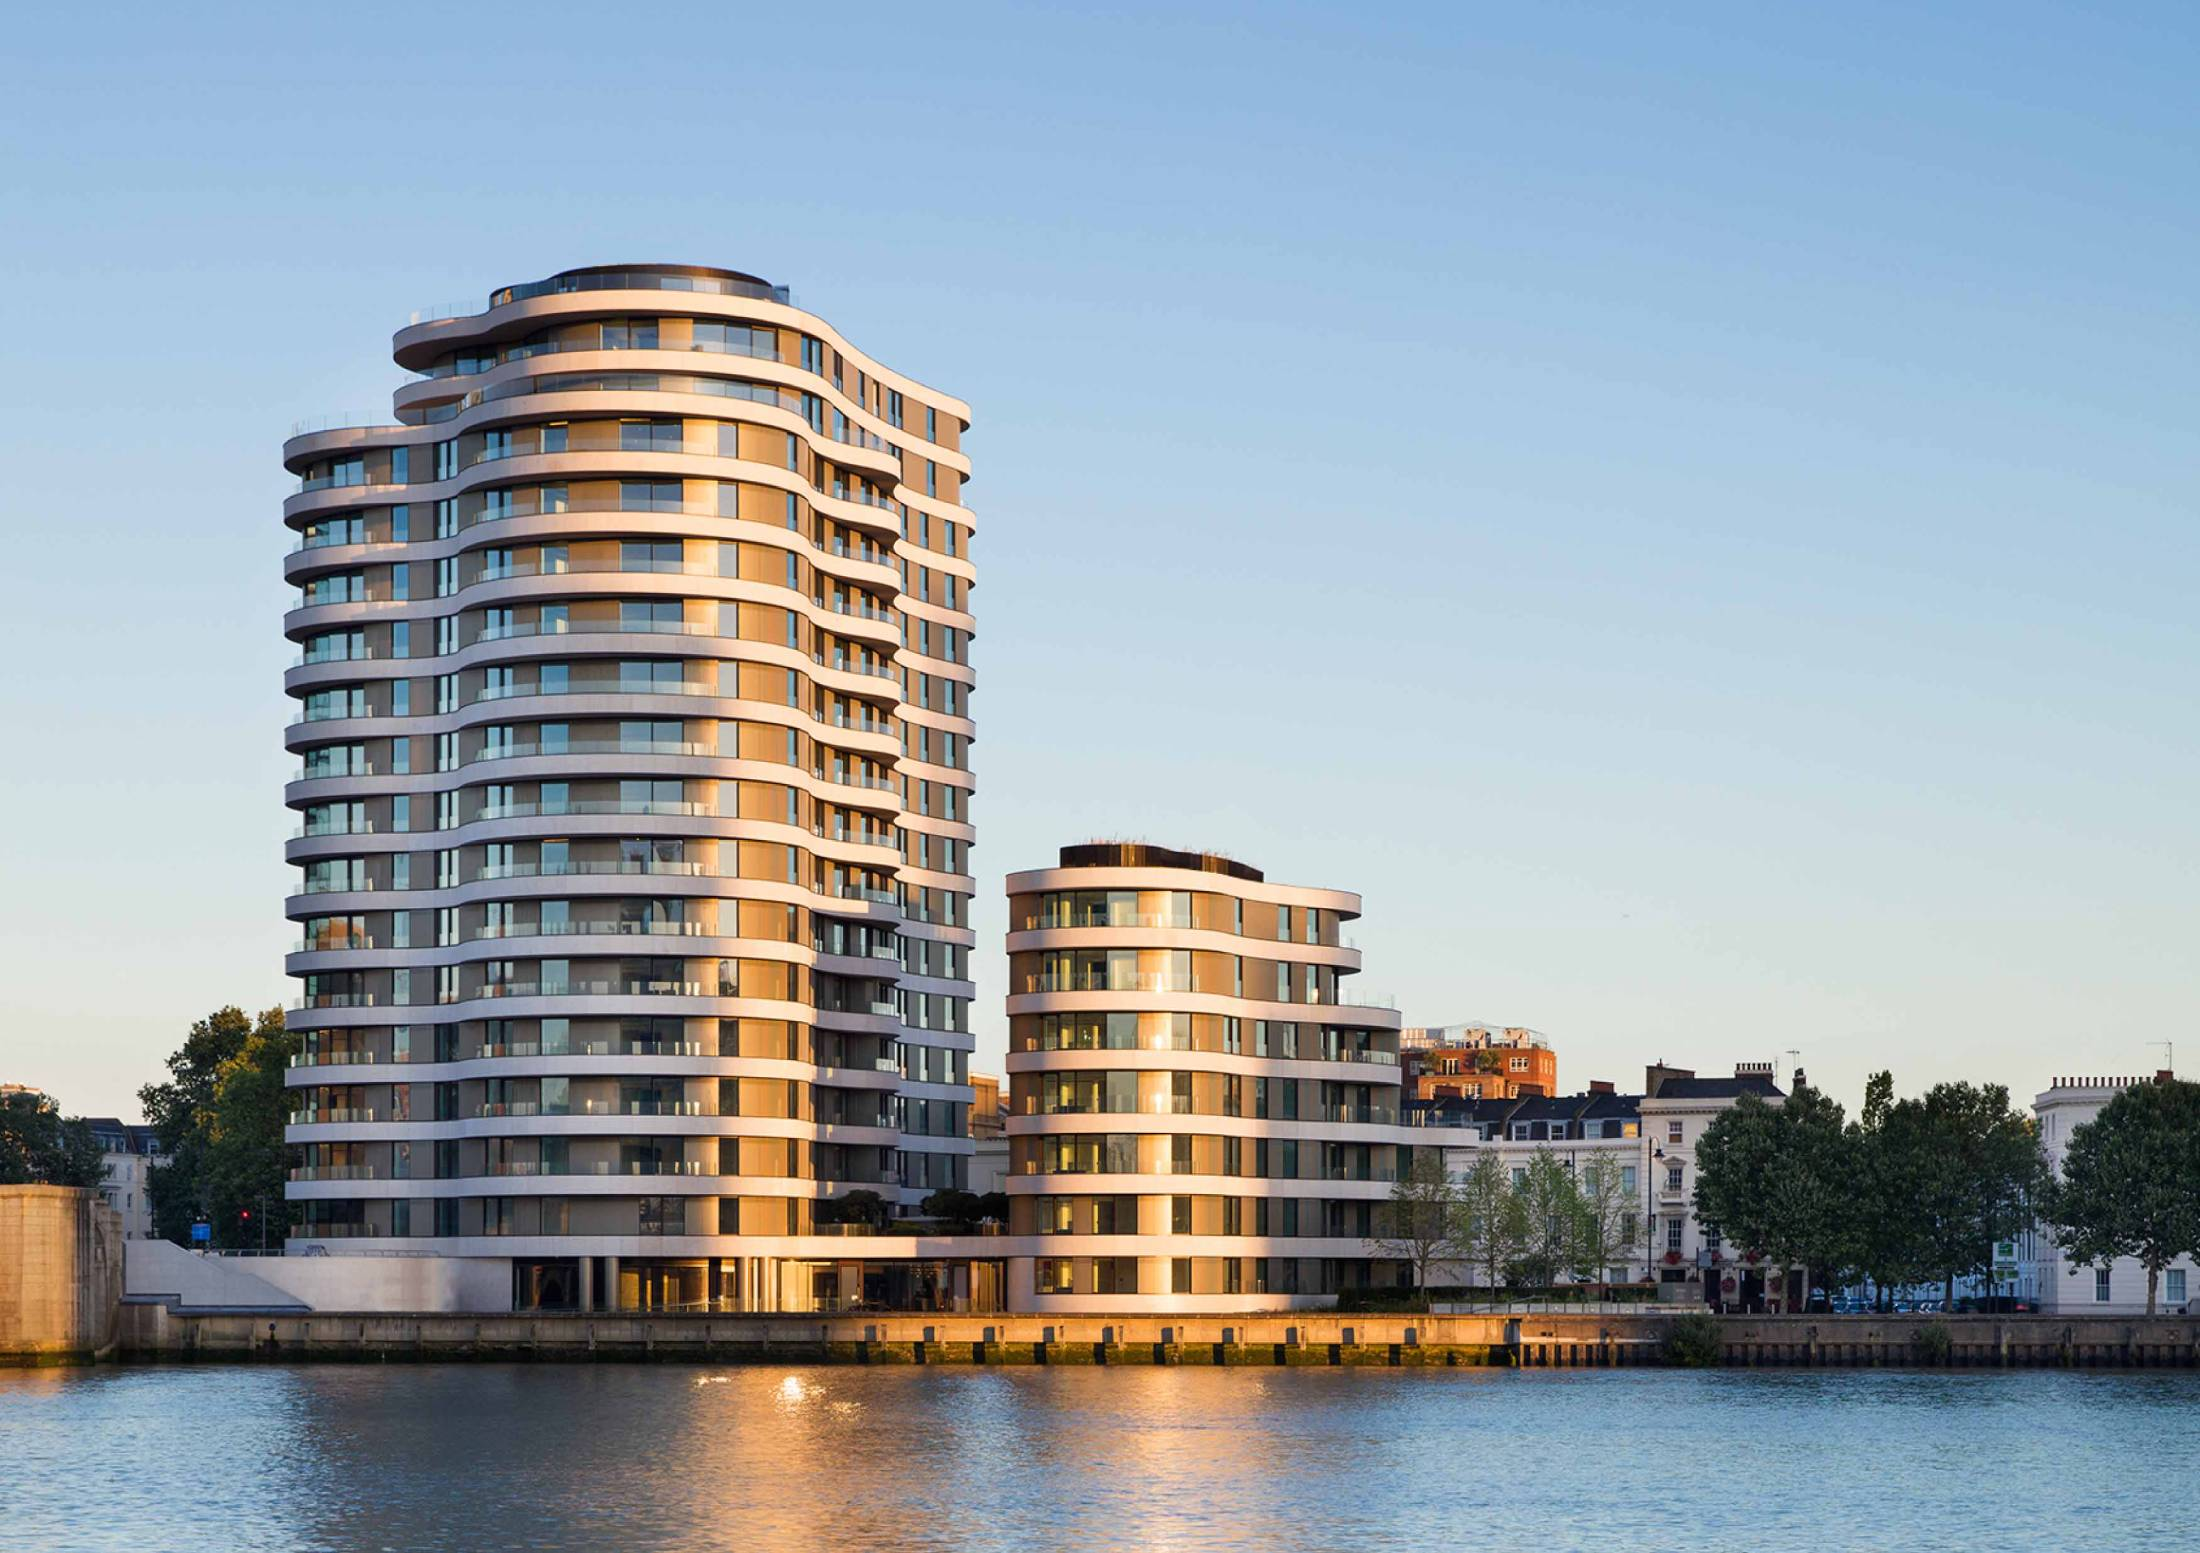 Crosstree portfolio - Riverwalk, Millbank, London